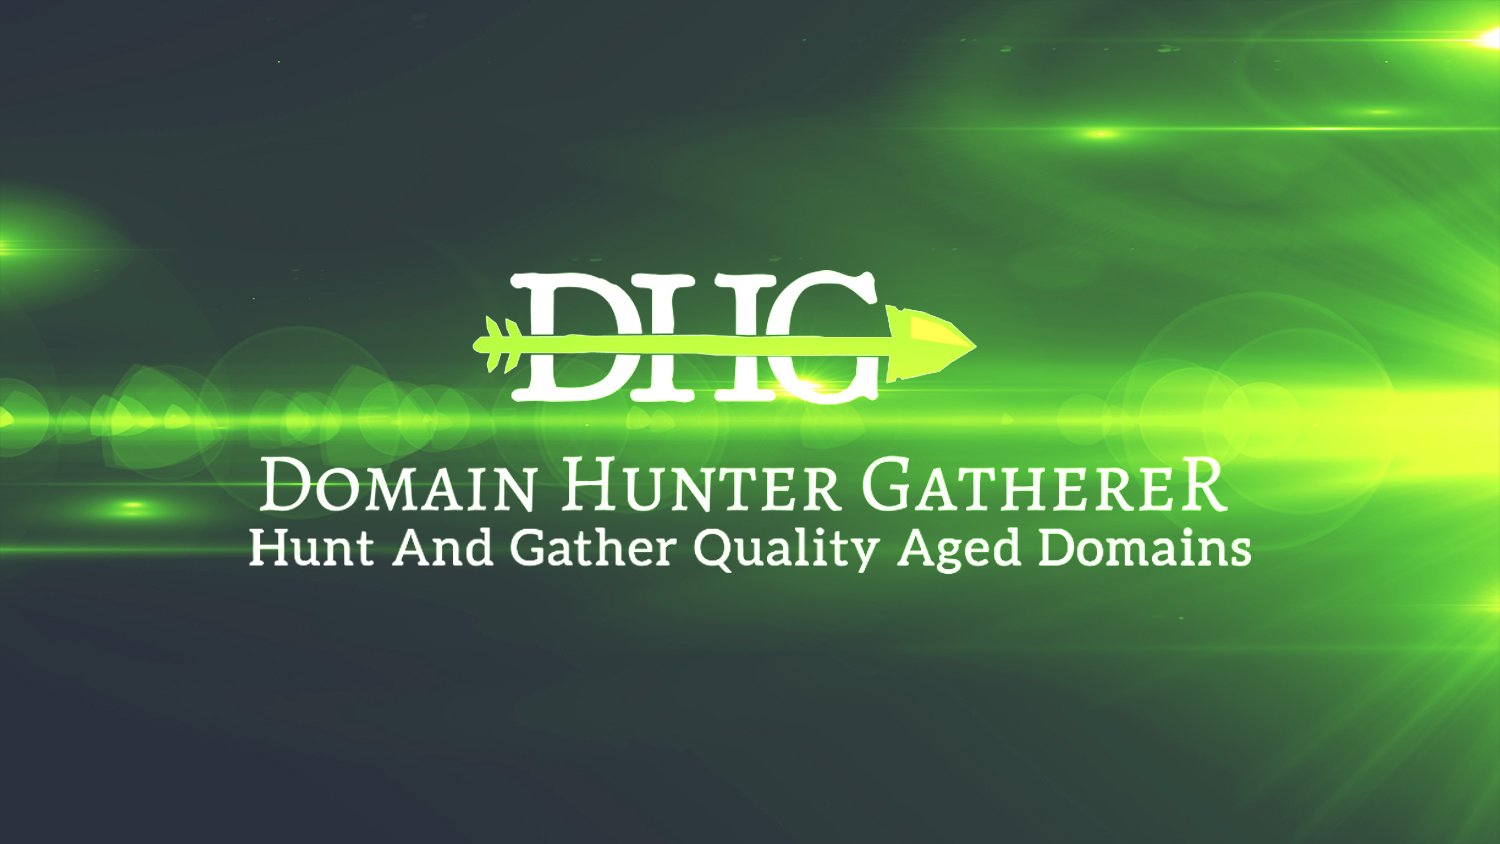 Domain Hunter Gatherer Review (2021) - All You Need To Know